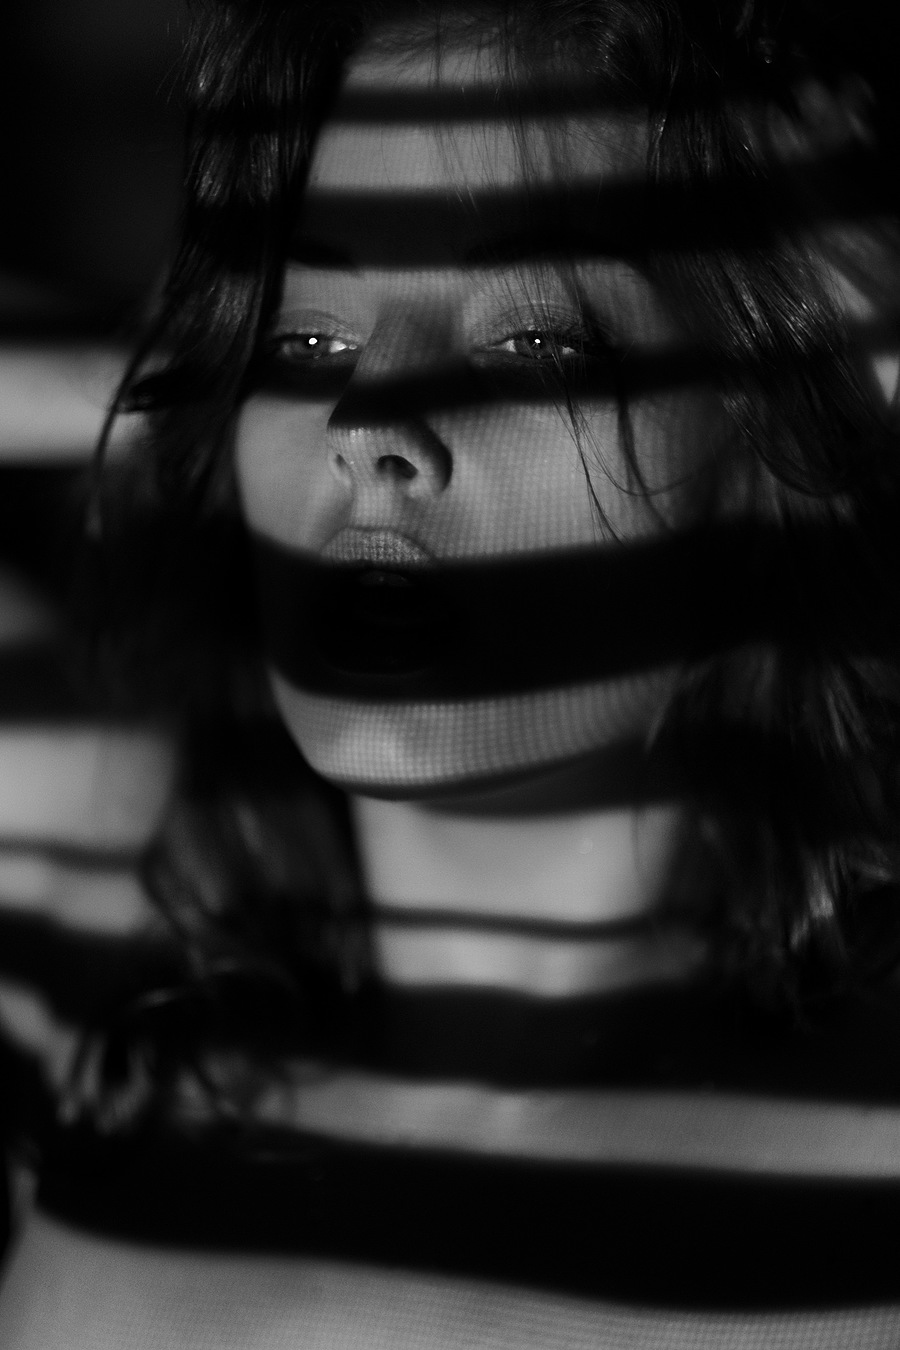 There are dark shadows on the earth, but its lights are stronger in the contrast. Charles Dickens / Photography by Abstract Reality, Model LottiiRose, Assisted by Poisonedgoat / Uploaded 18th February 2019 @ 10:08 PM